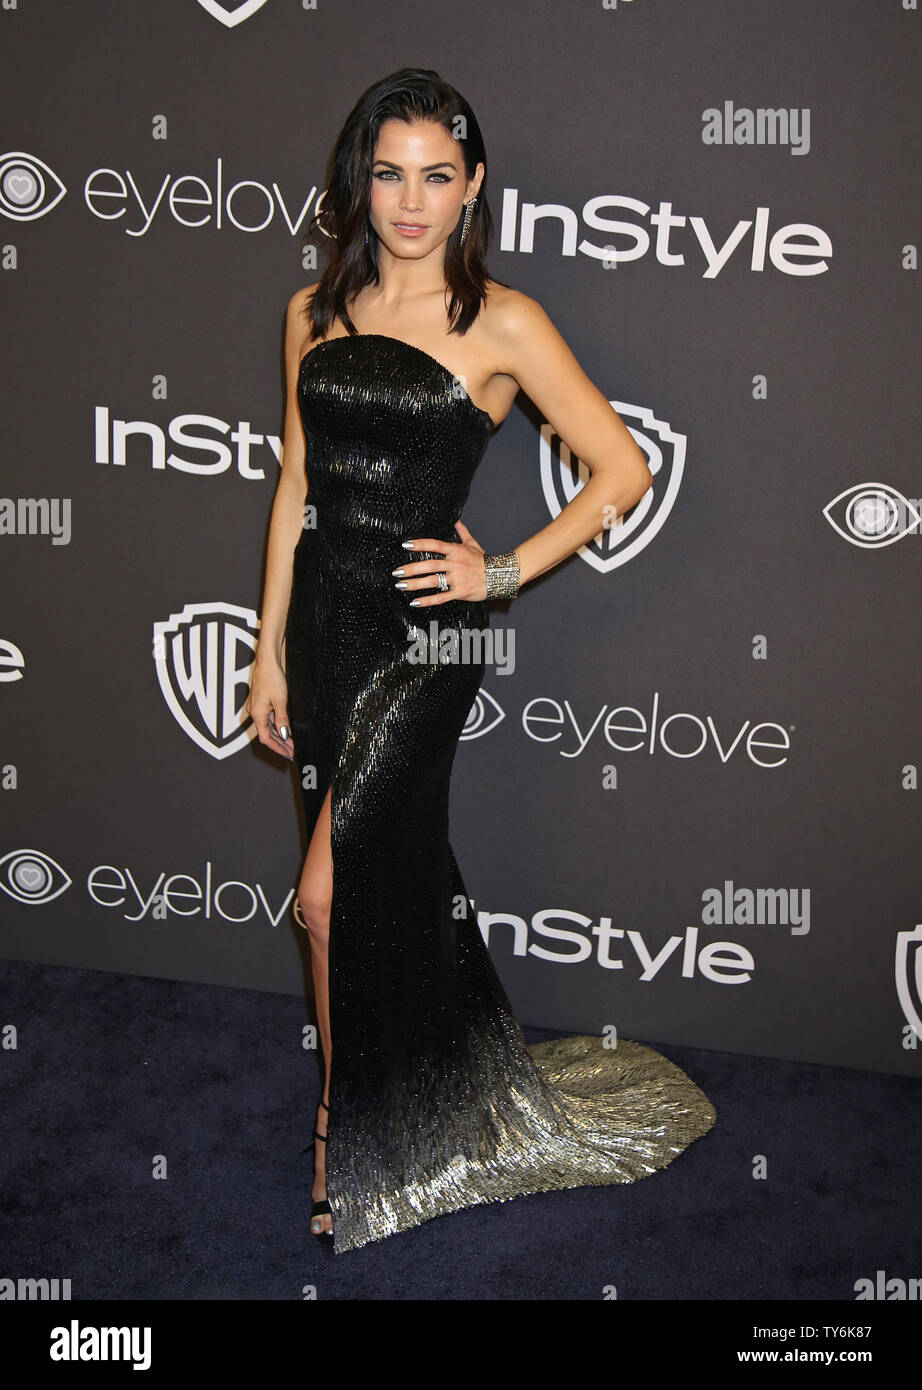 Jenna Dewan Tatum attends the 18th annual InStyle and Warner Bros. Golden Globe after-party at the Beverly Hilton Hotel in Beverly Hills, California on January 8, 2017.  Photo by David Silpa/UPI - Stock Image